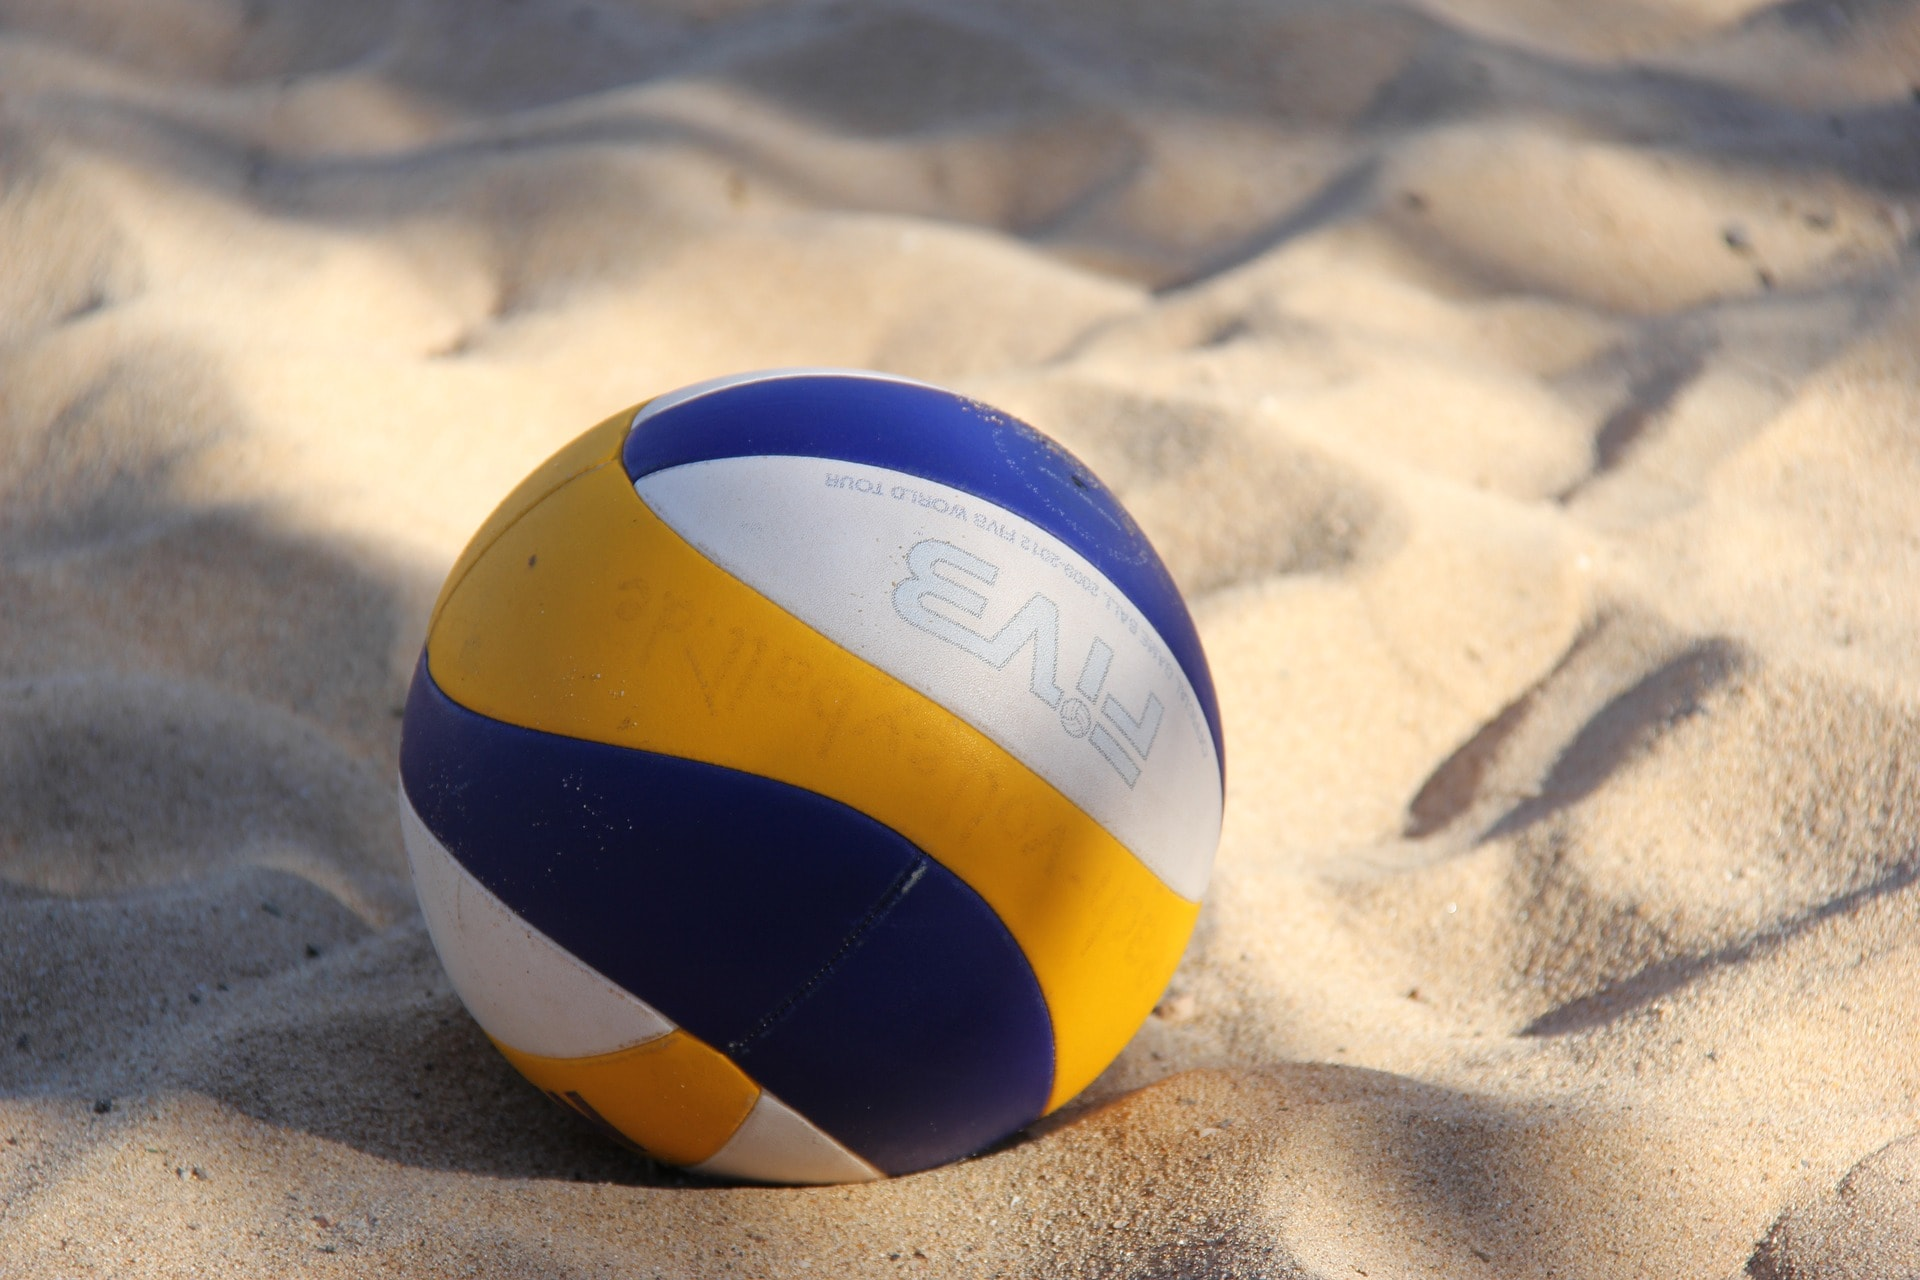 Beach volleyball resting on sand.